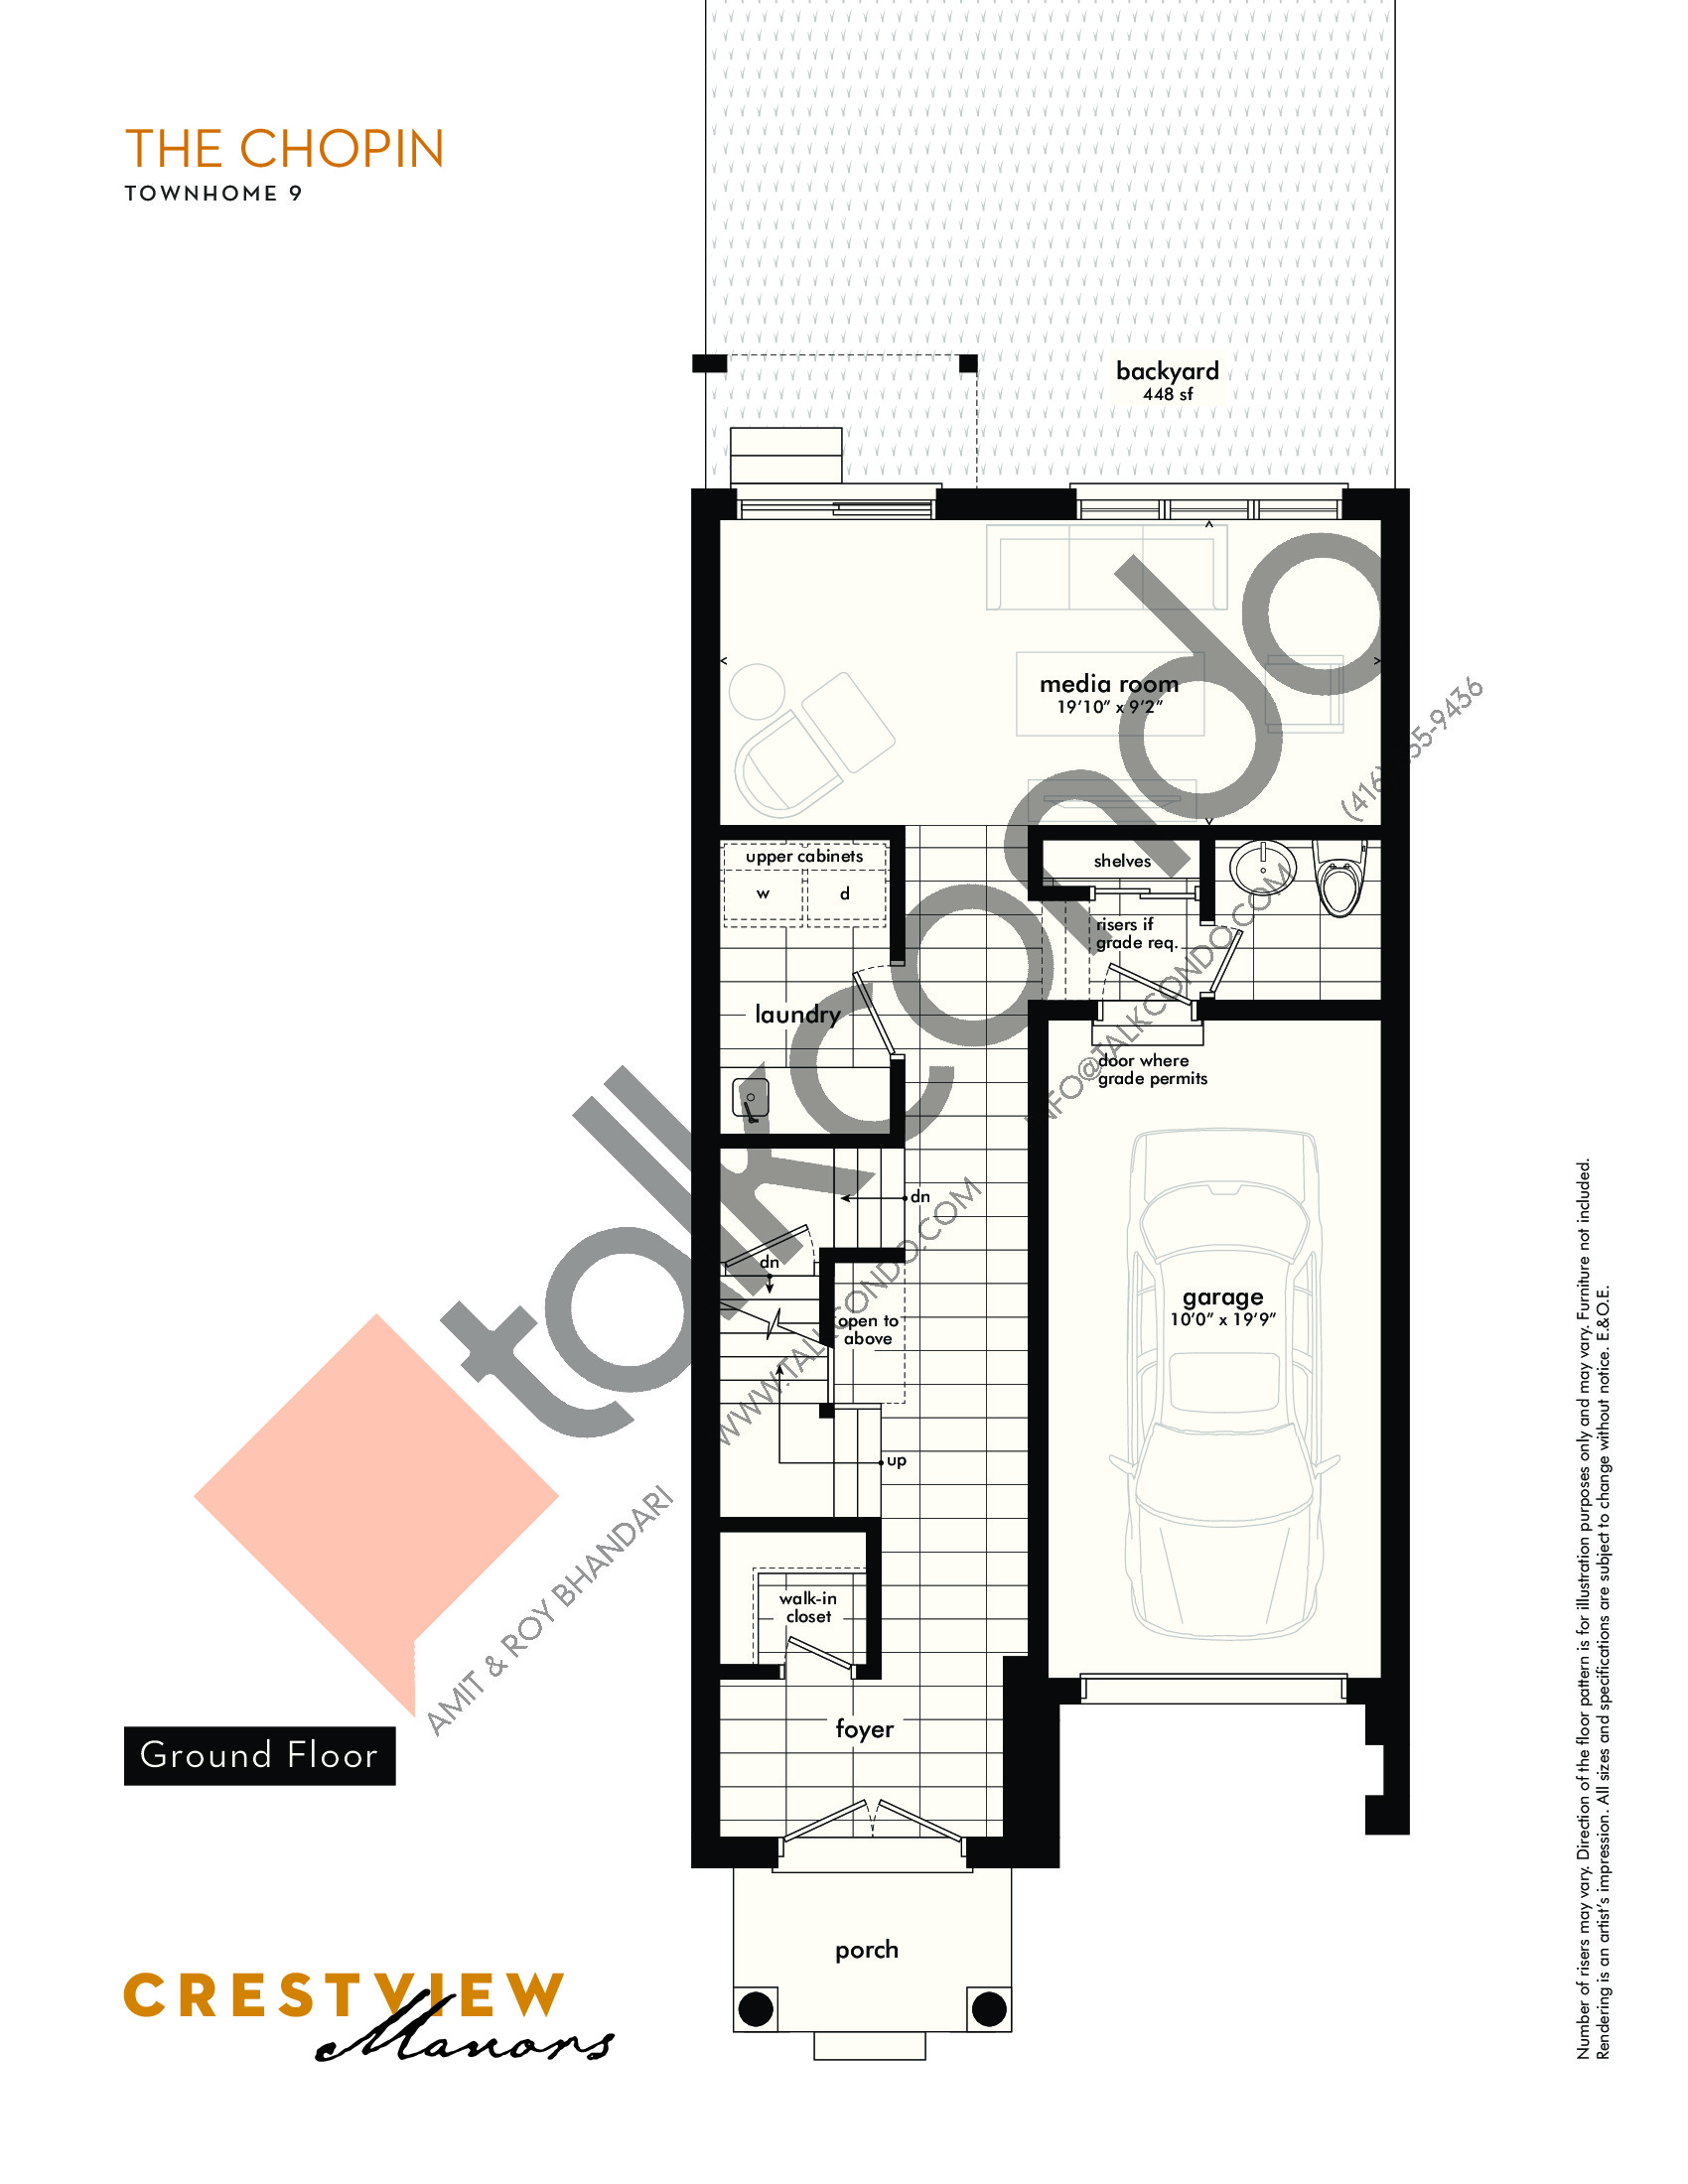 The Chopin - Ground Floor Floor Plan at Crestview Manors - 2241 sq.ft